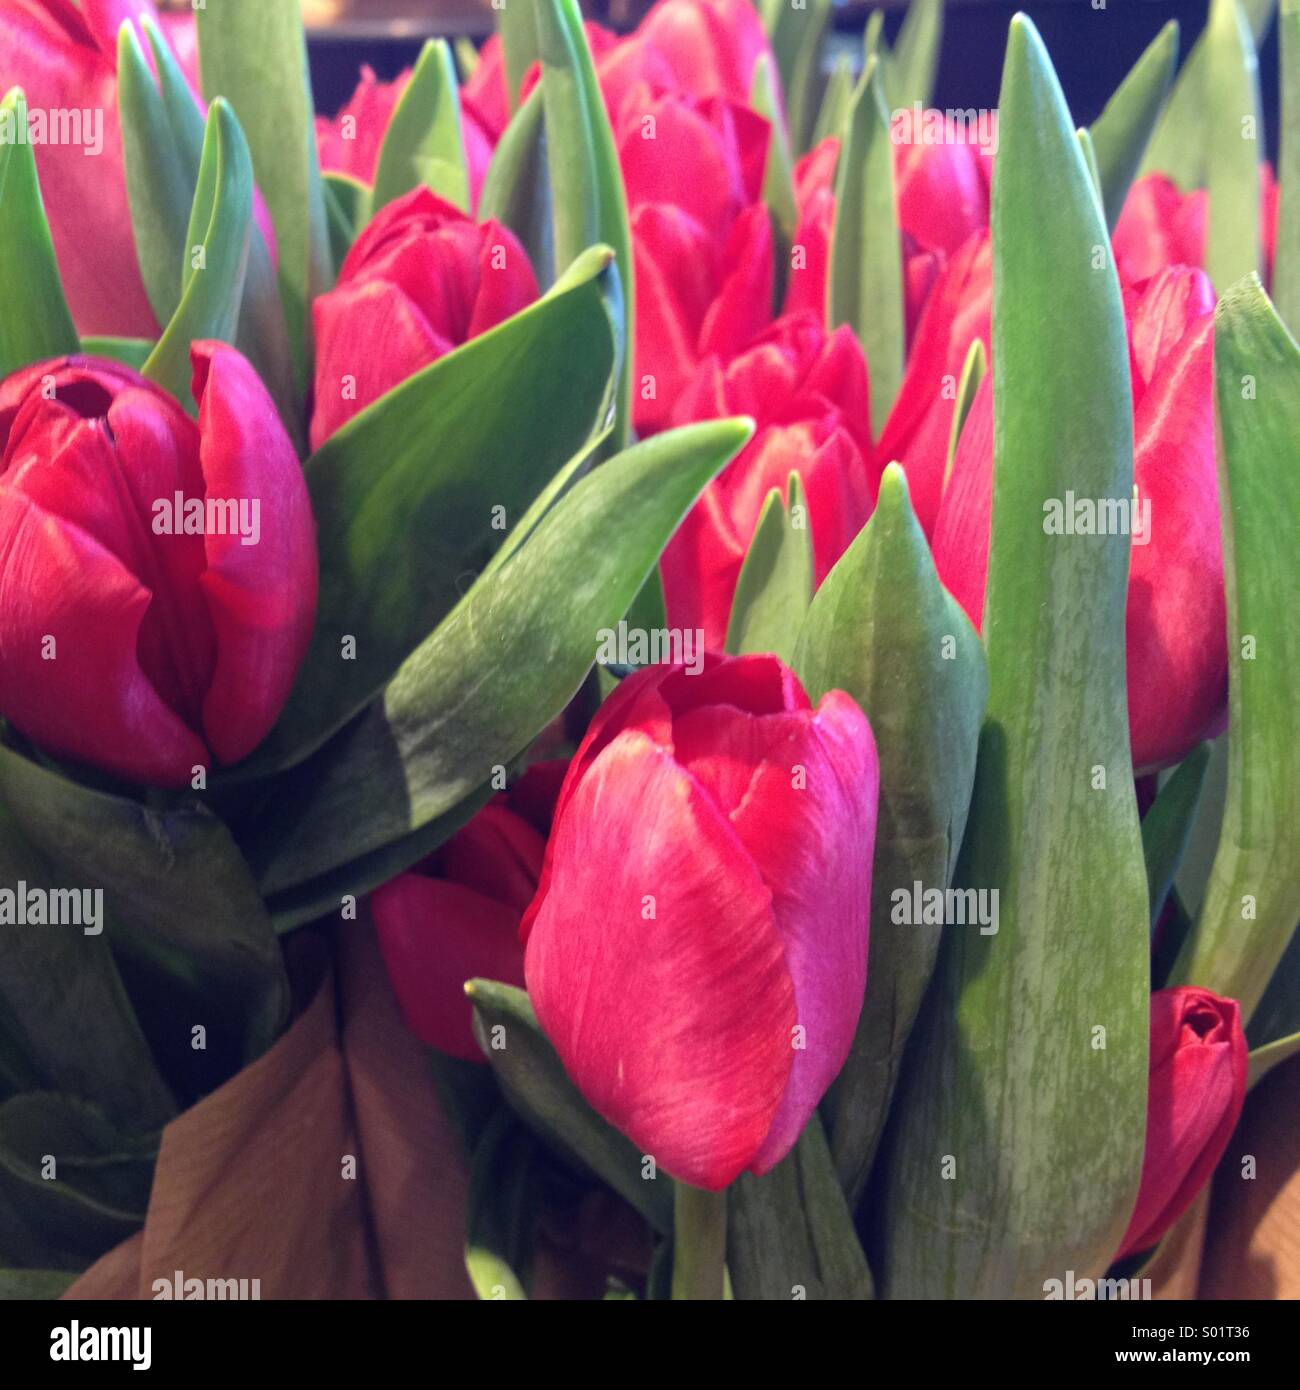 Pink Tulips - Stock Image